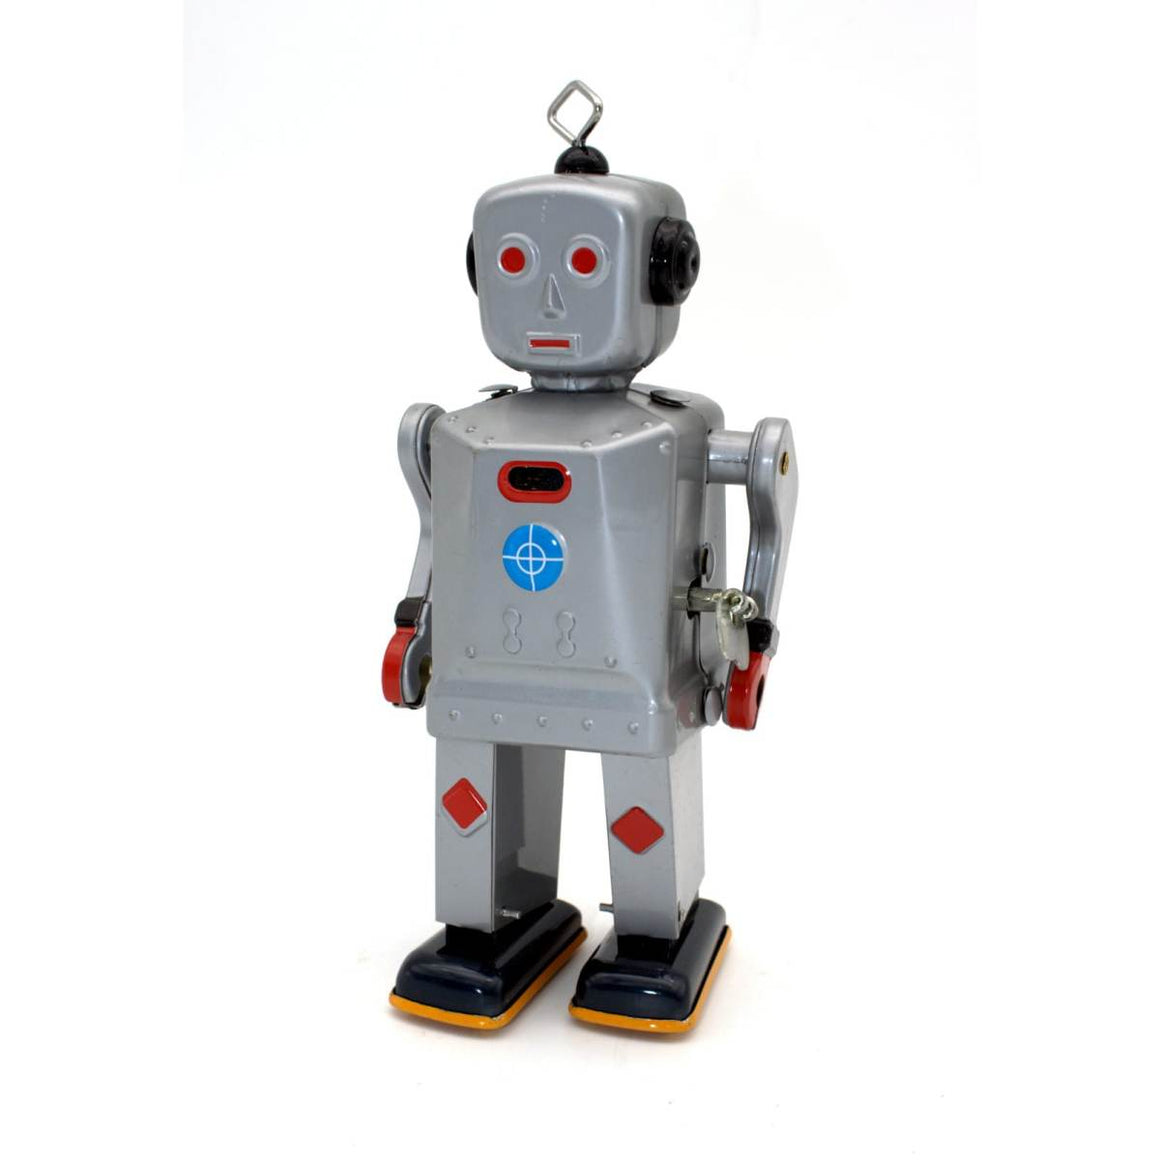 A silver wind up tin toy robot, a reproduction of a vintage Japanese toy . It is mostly silver, with red and blue details and features a square antenna on its head.